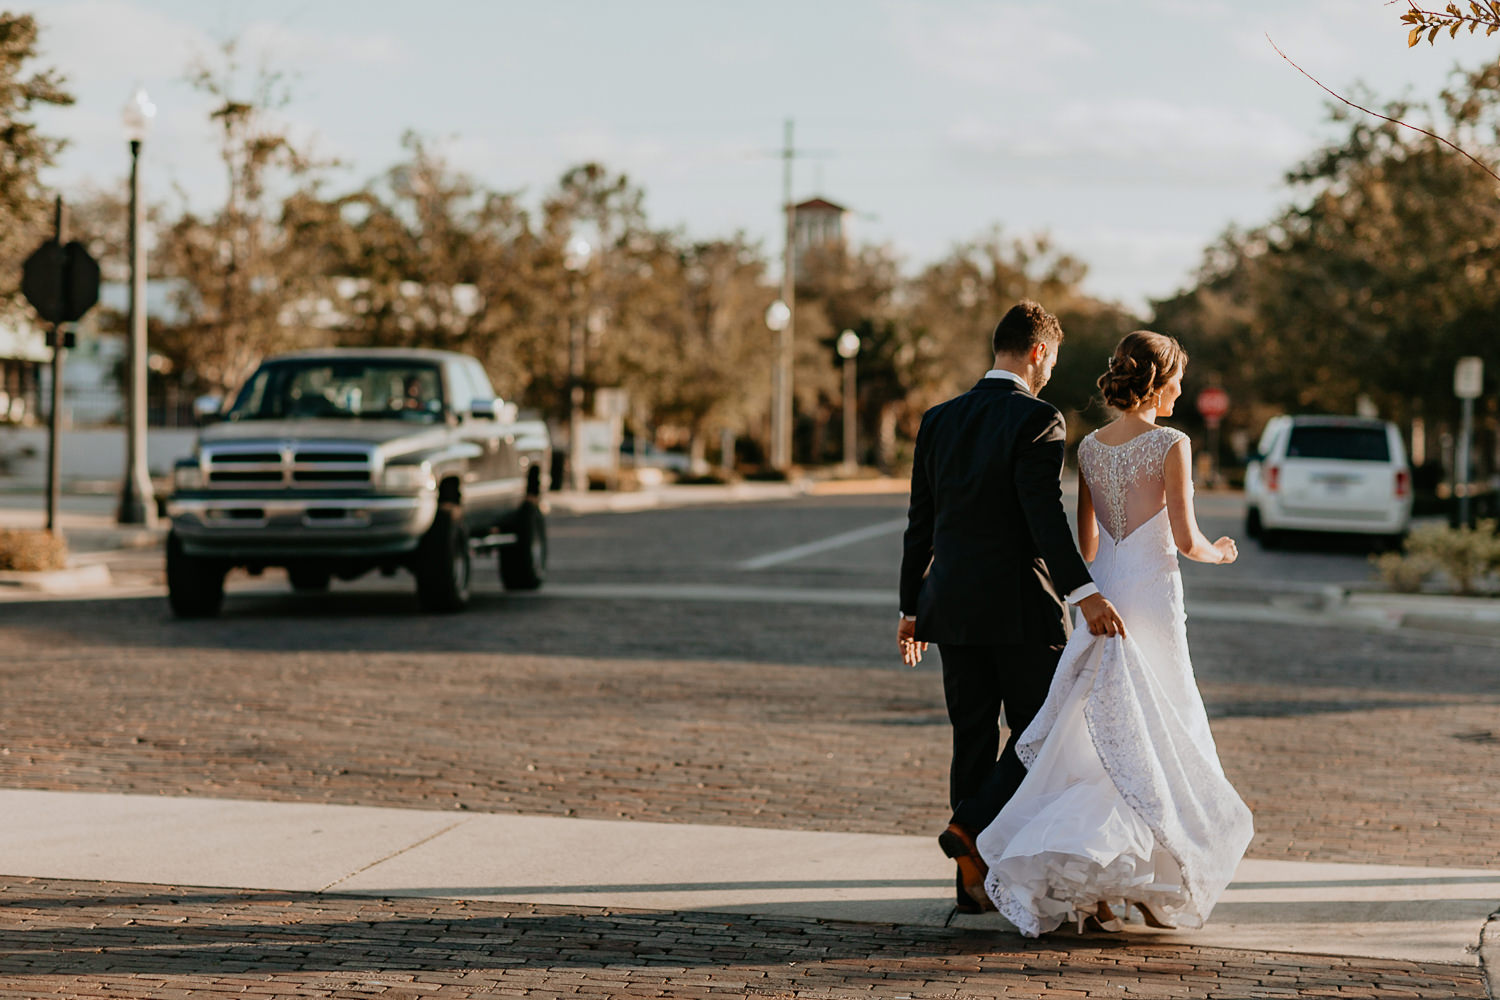 newlyweds walking away from camera on cobblestone road